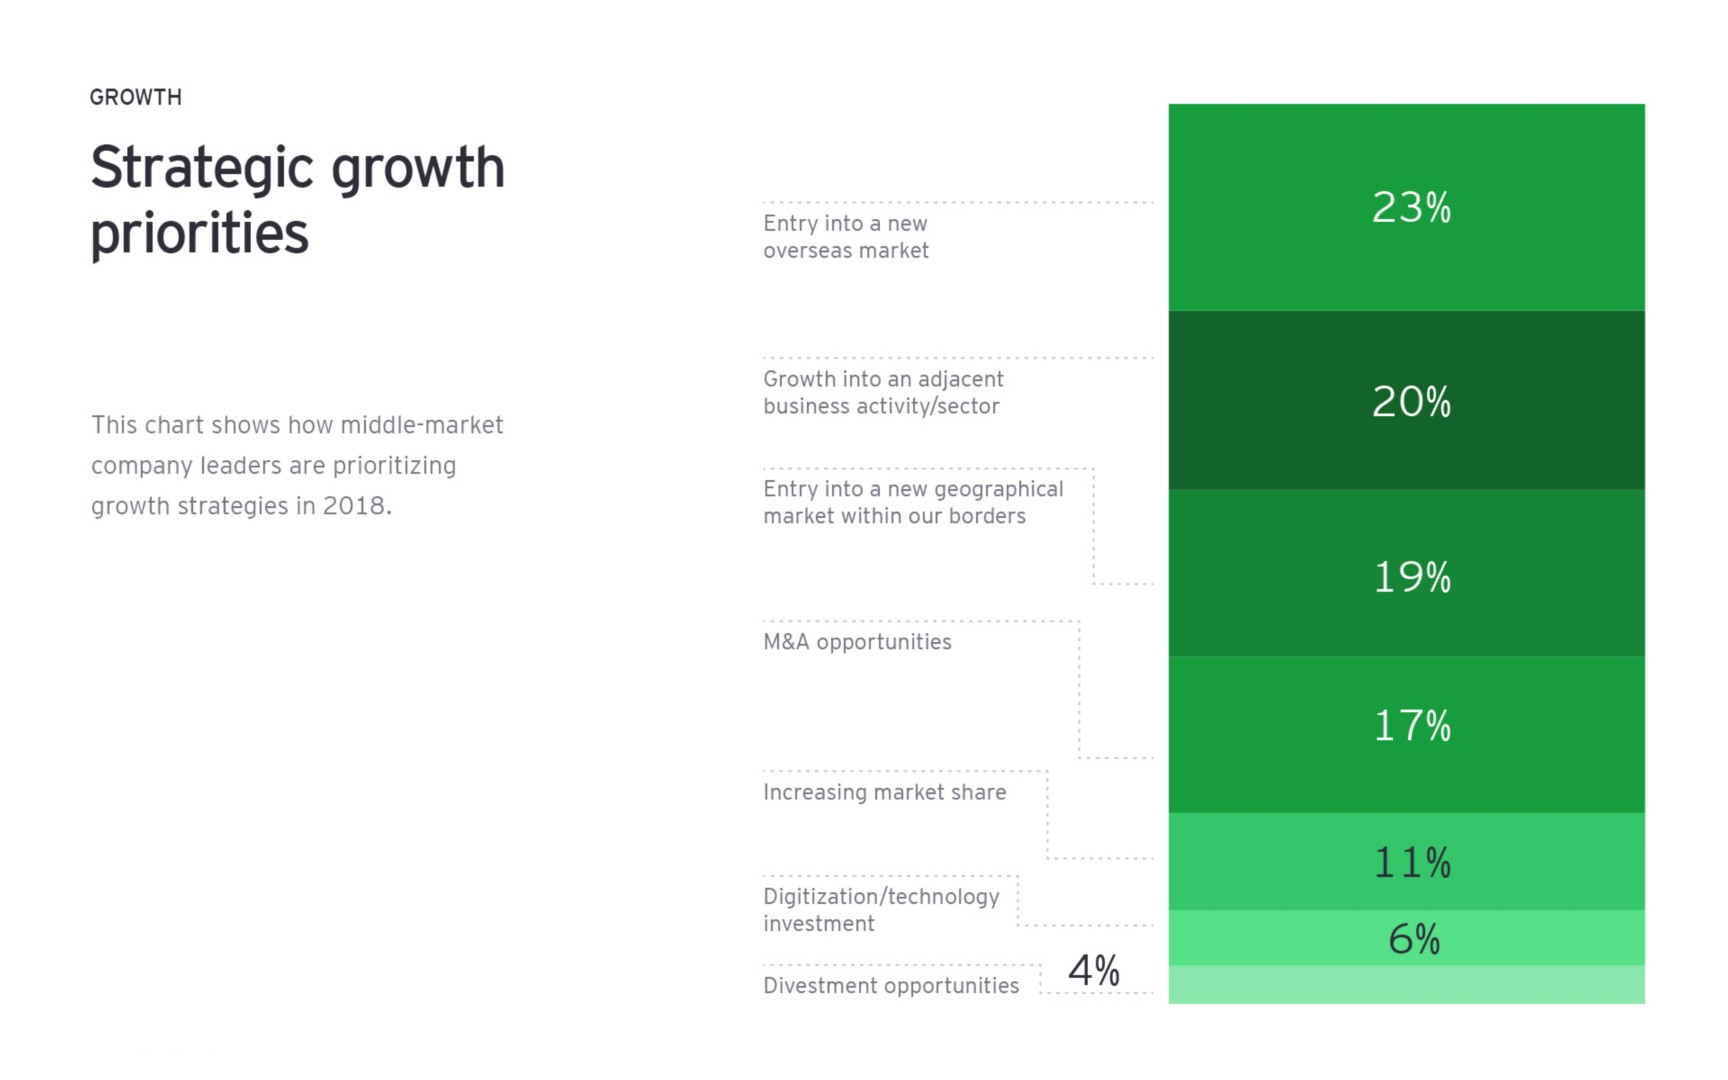 Strategic growth priorities chart